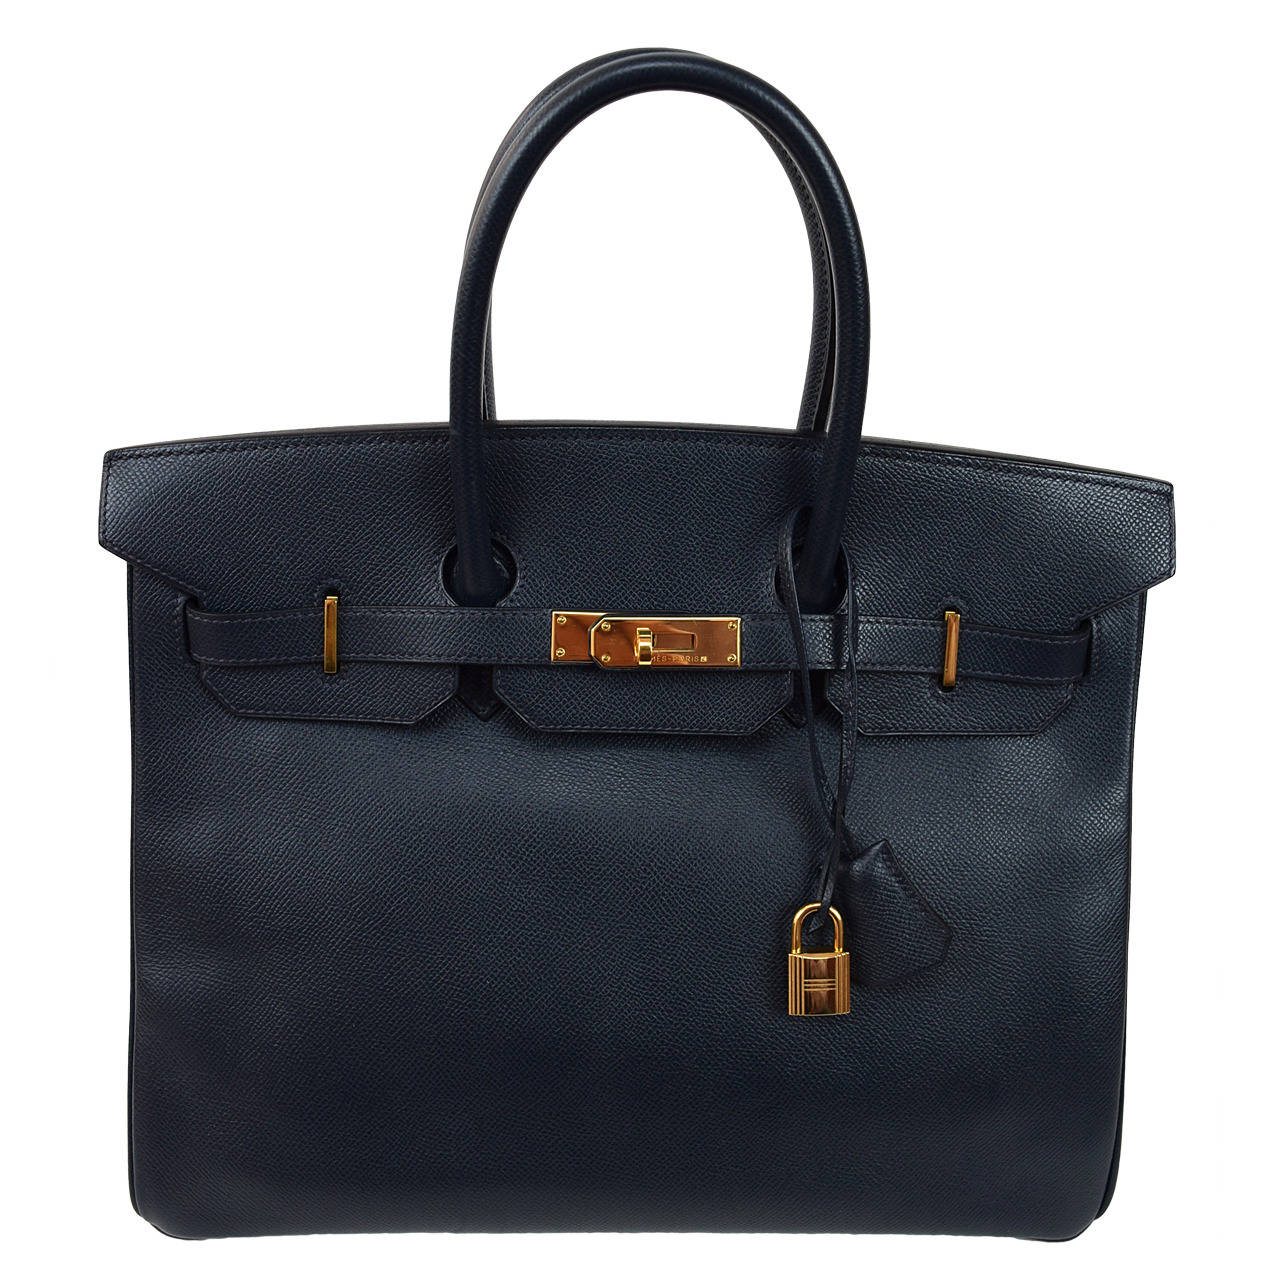 Hermes Dark Navy Blue Coucheval Birkin 35 cm bag